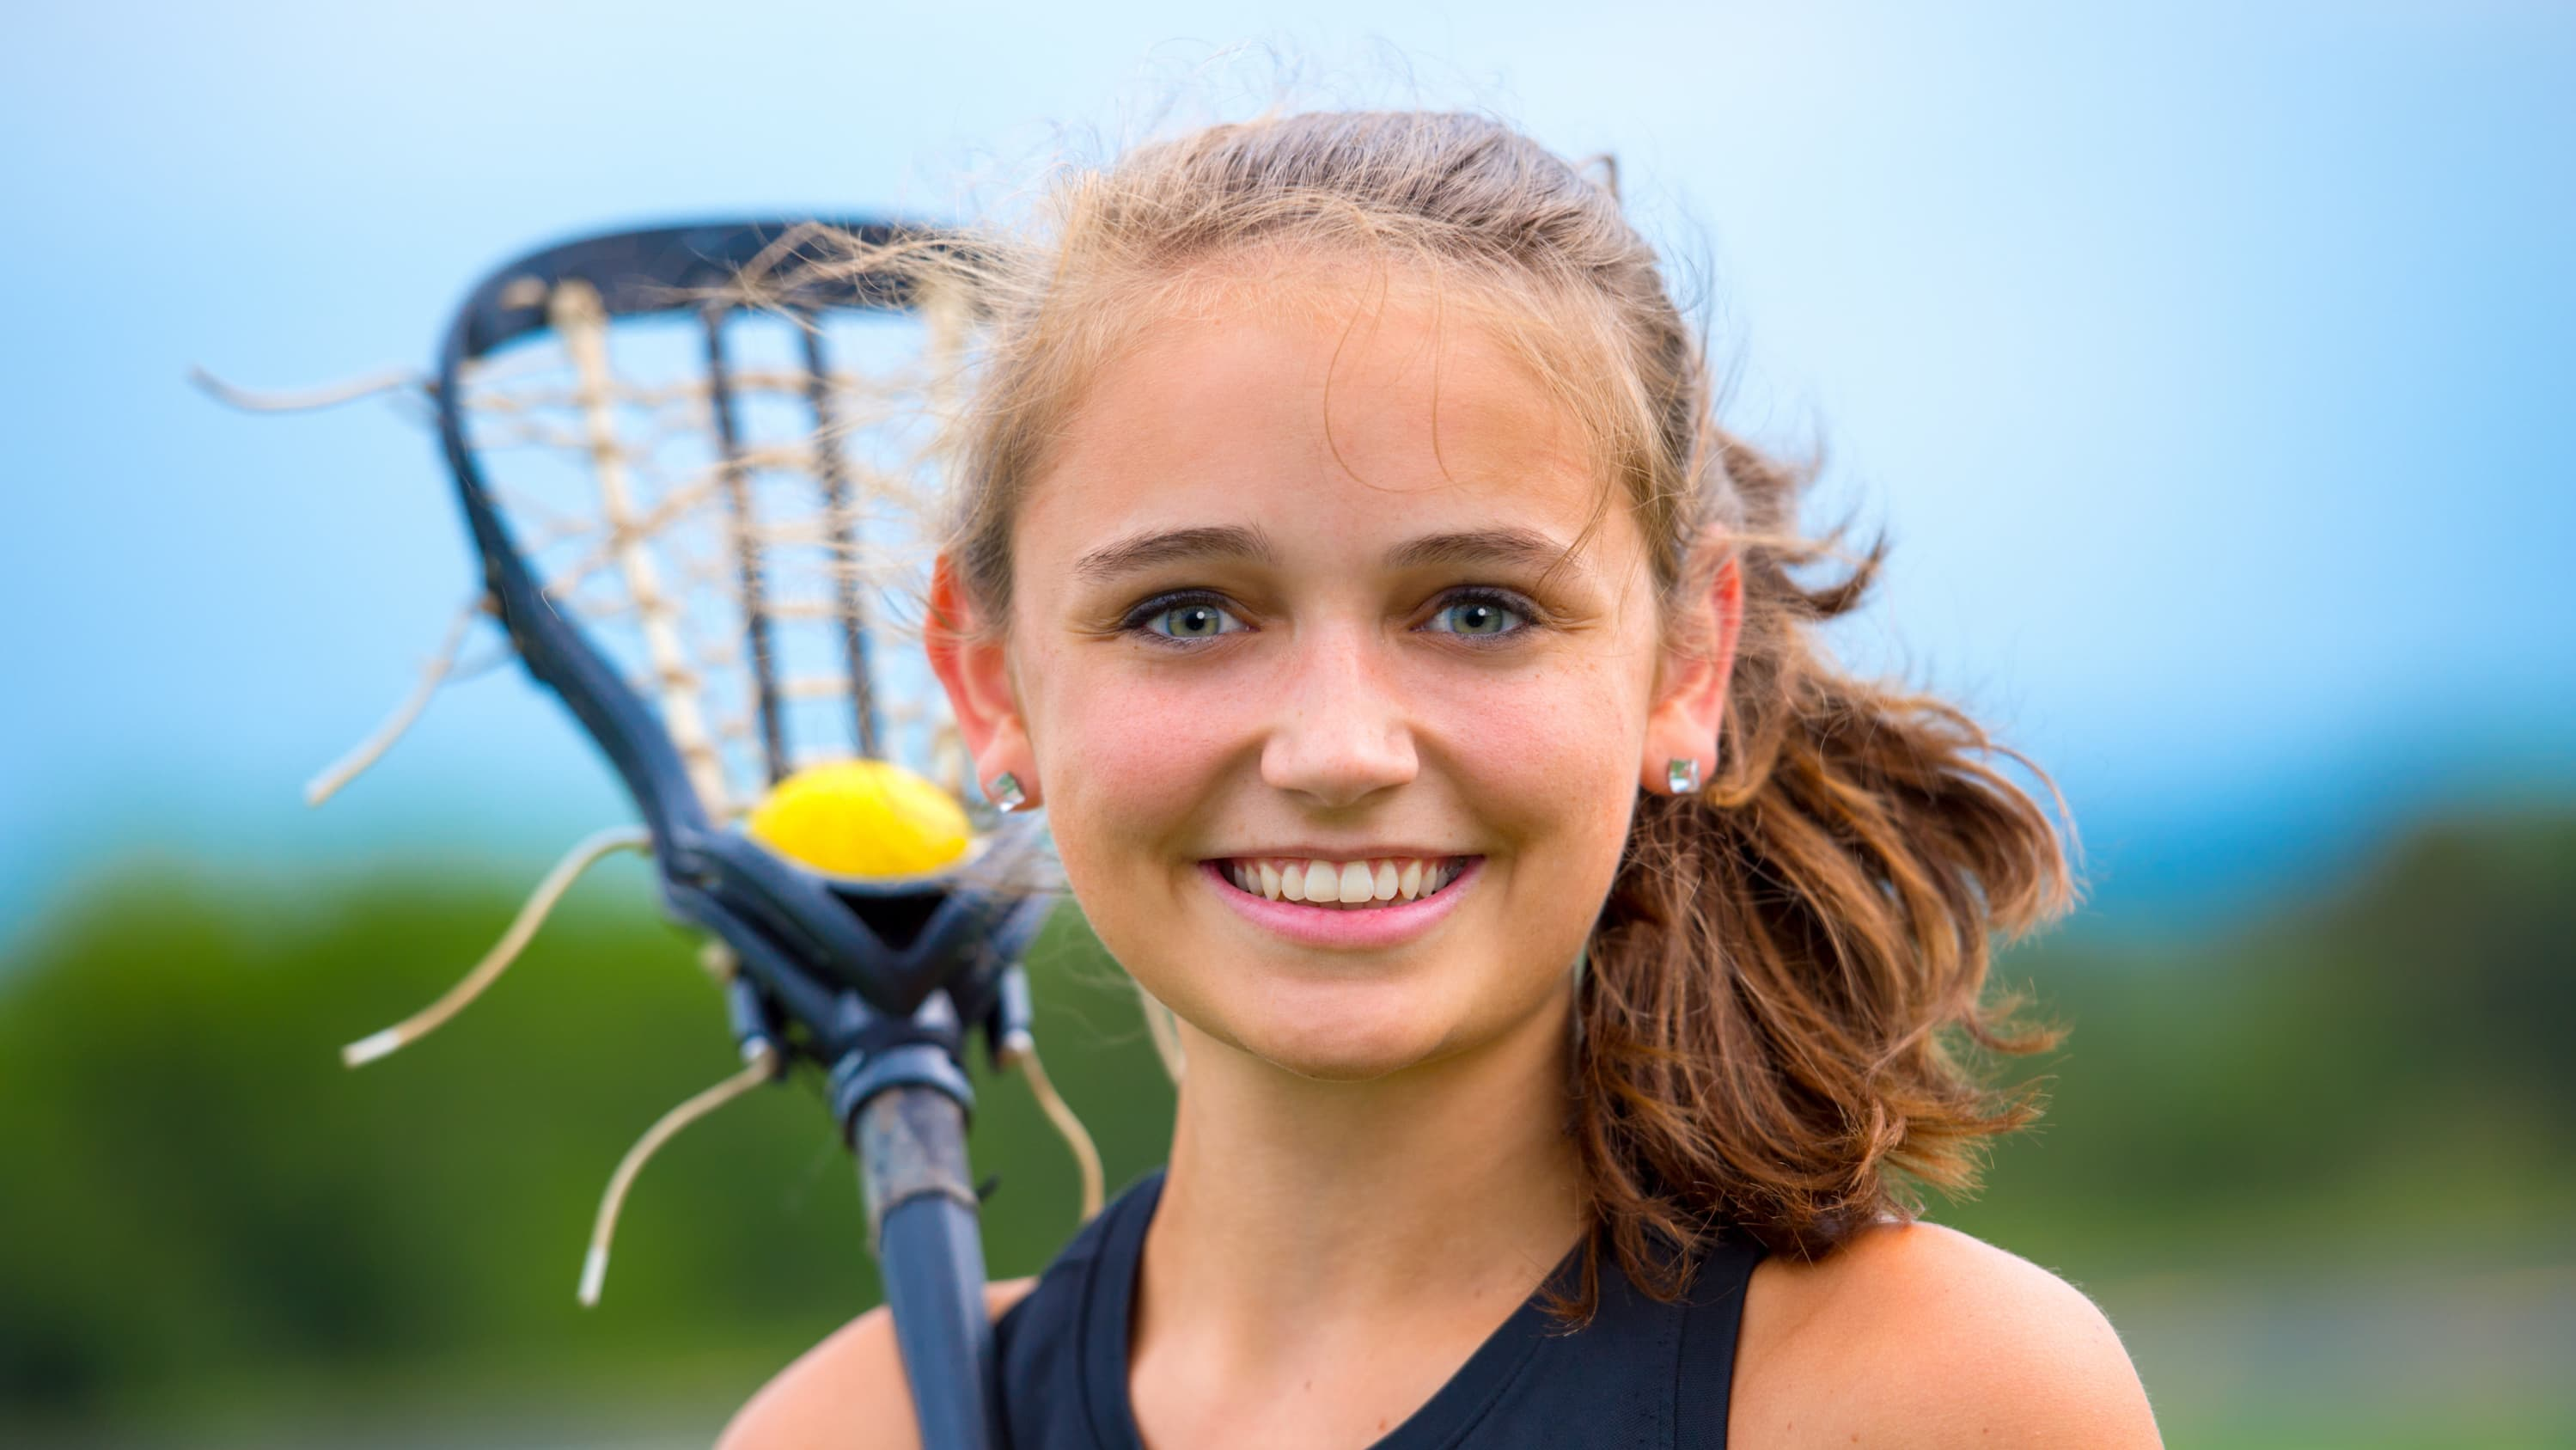 young lacrosse player